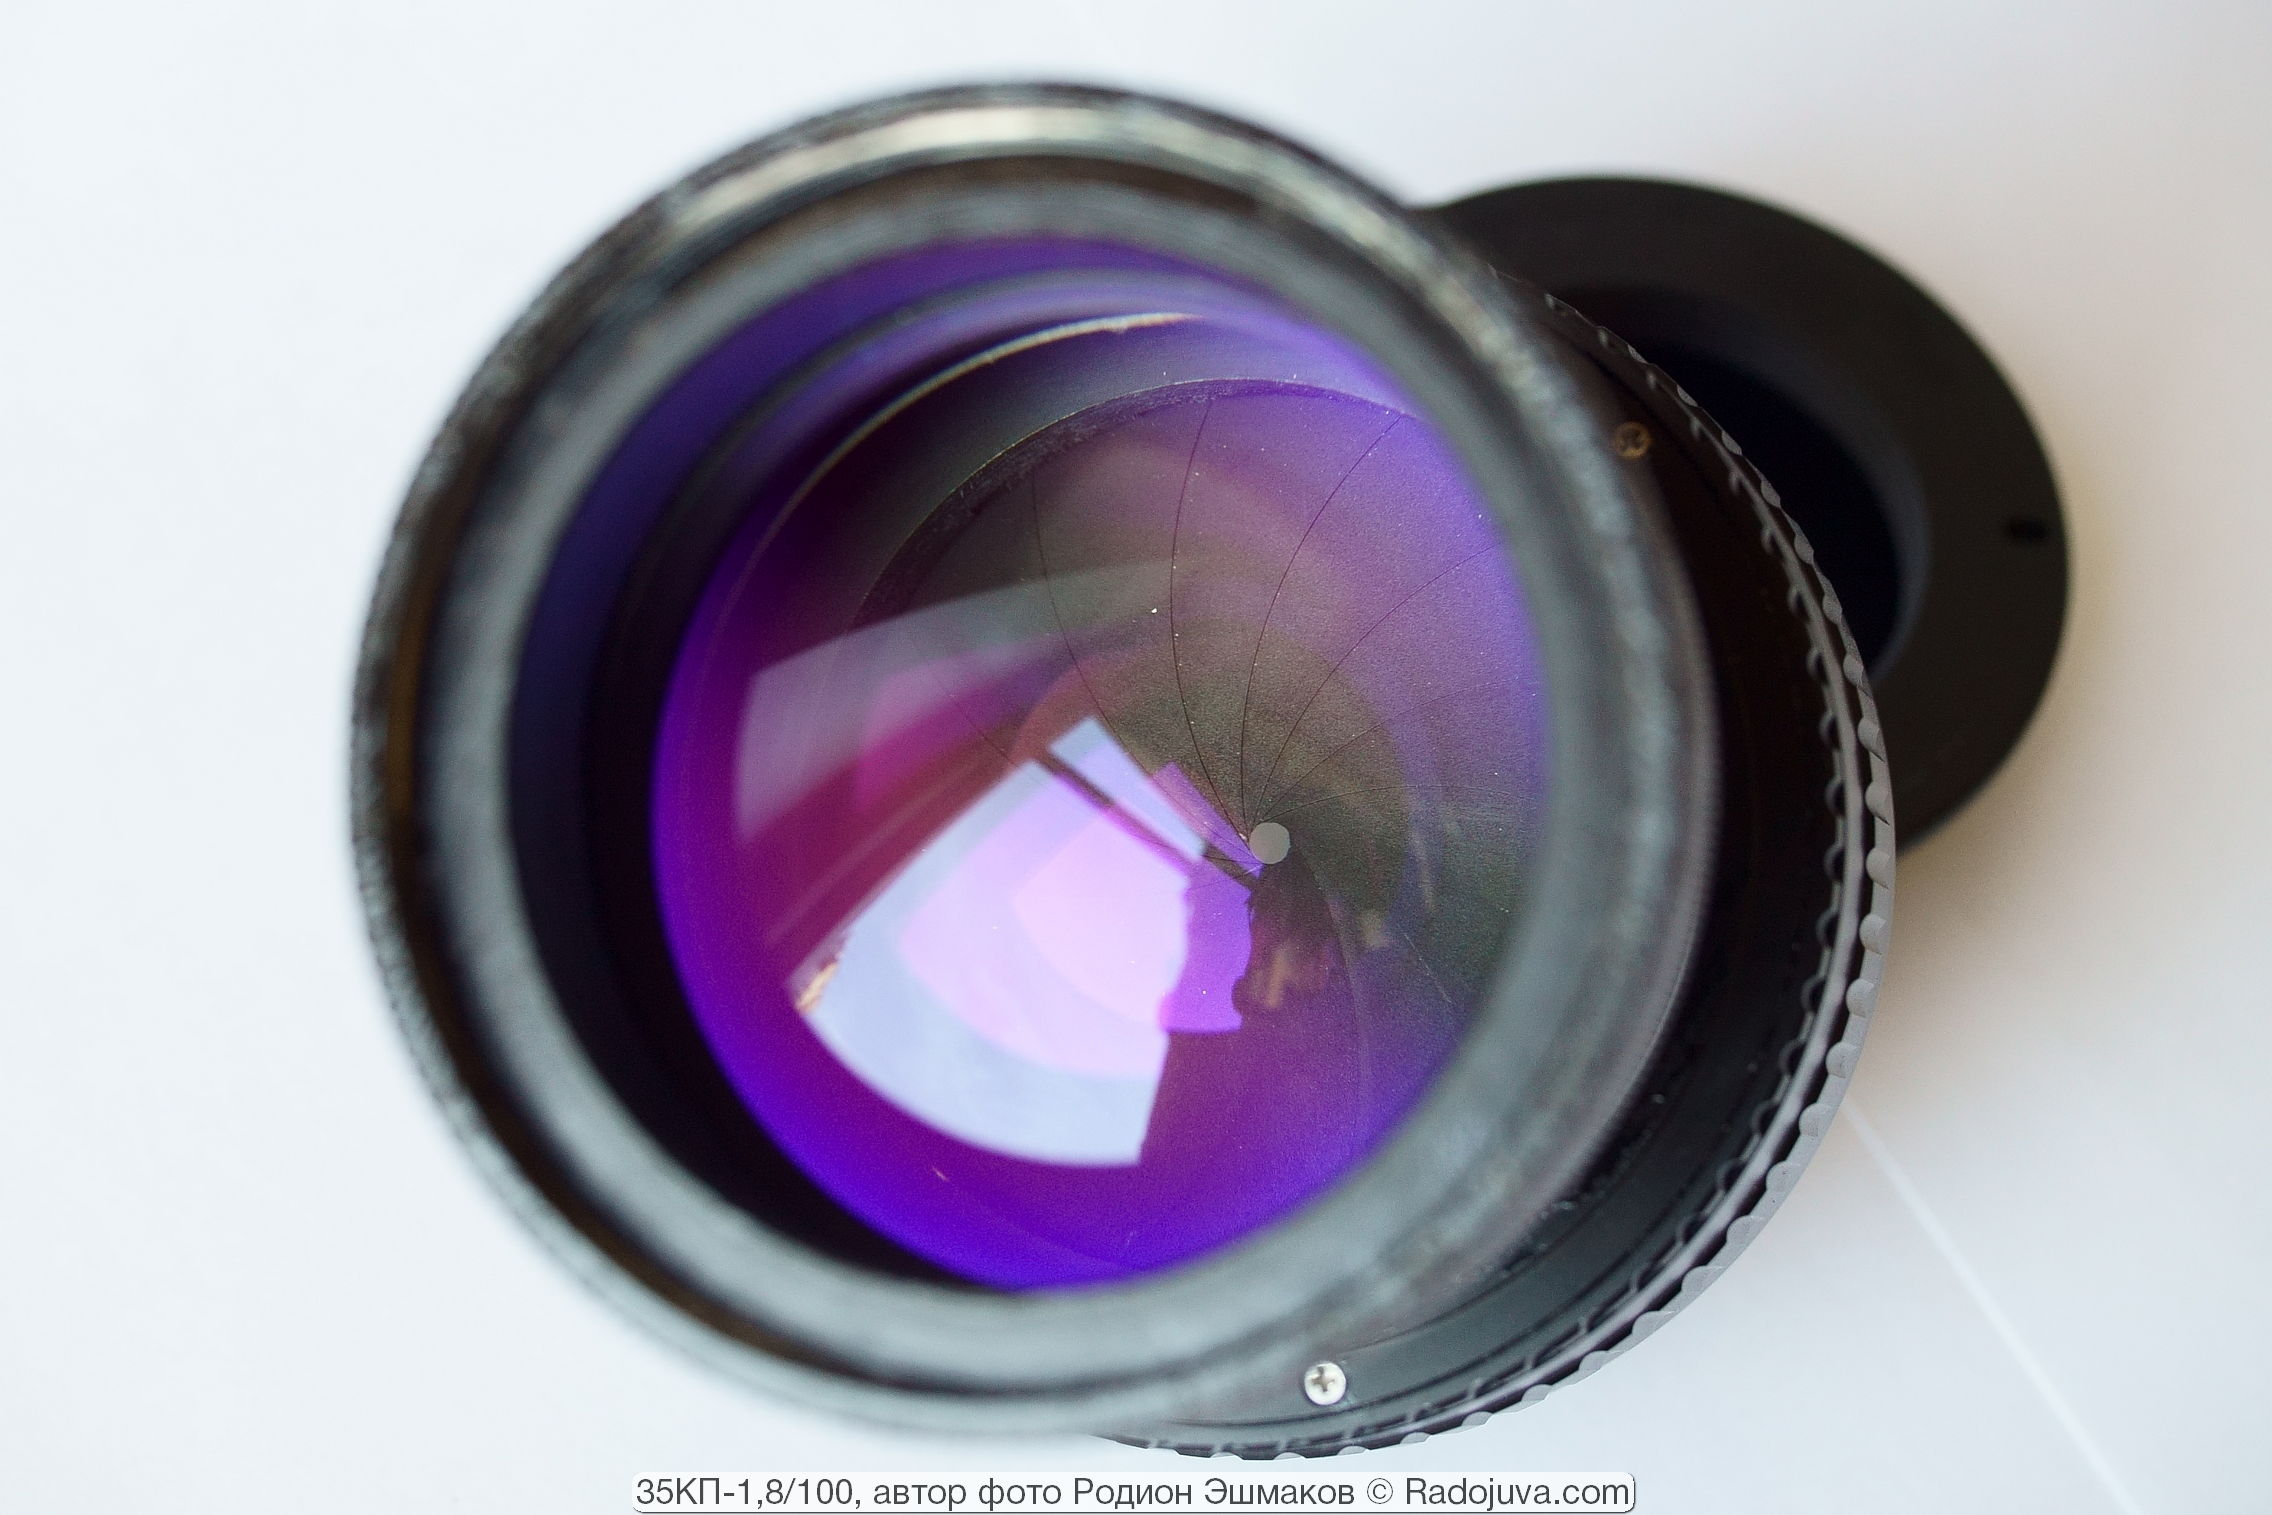 With this lens, I had to sweat to set the internal diaphragm.